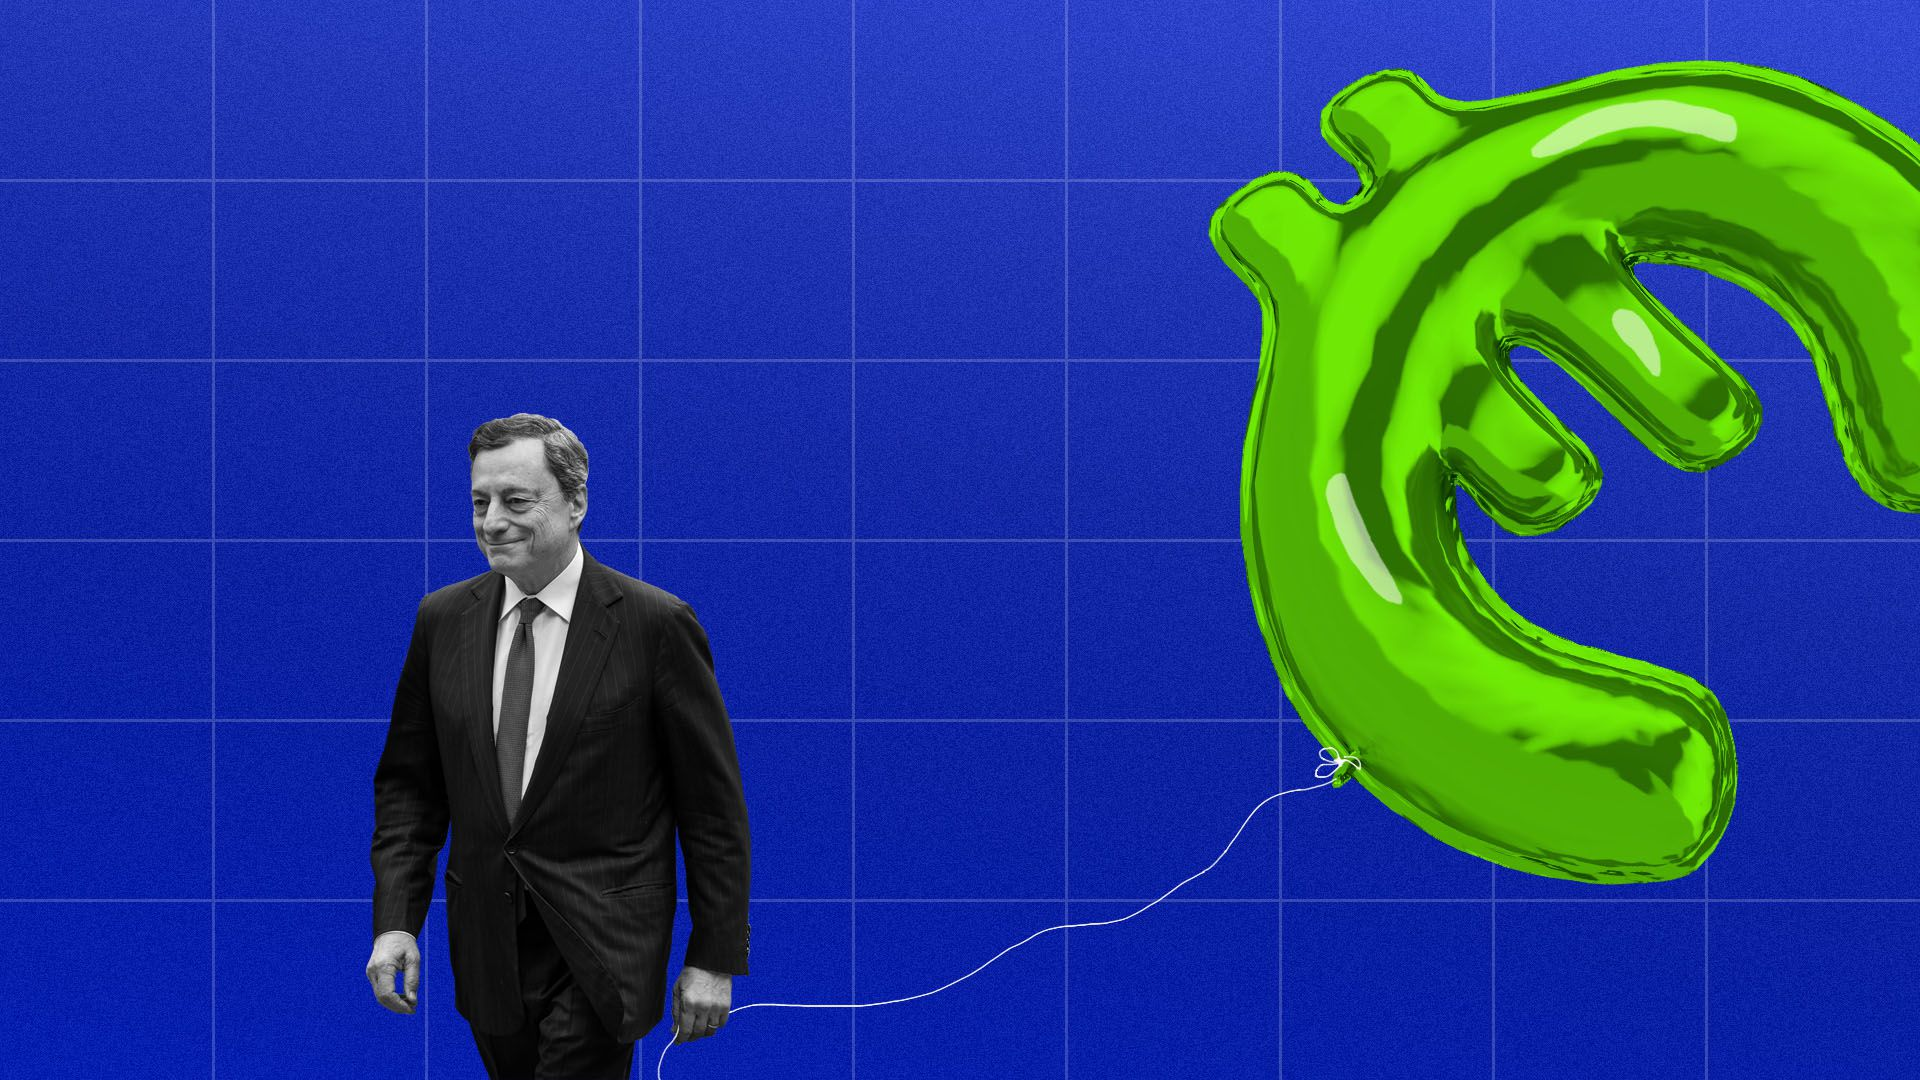 Illustration of Mario Draghi holding a euro sign balloon against the backdrop of a line graph